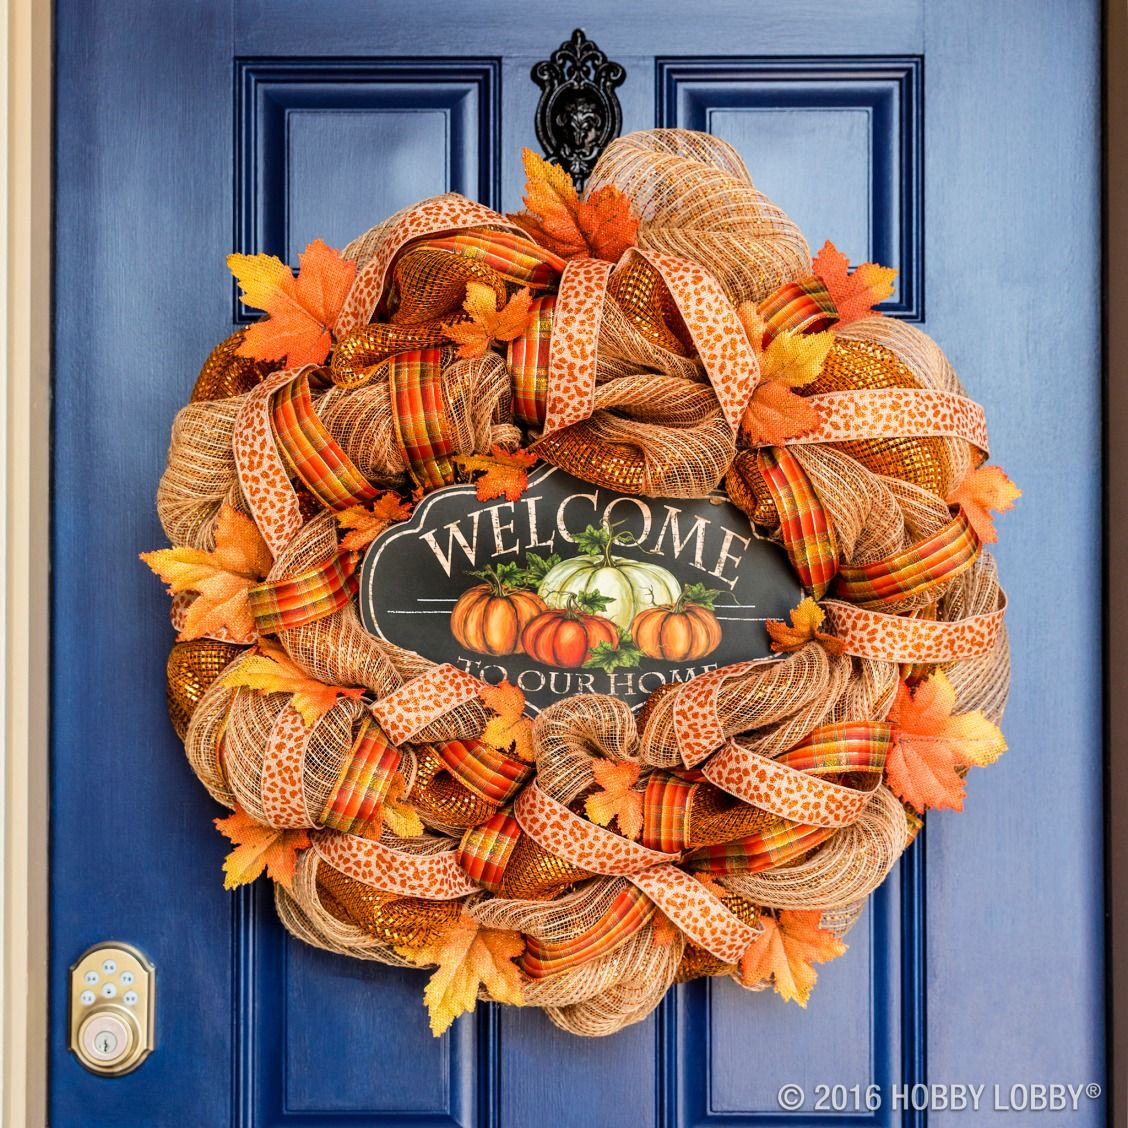 Make your wreath dreams come true with deco mesh! Wreaths - Hobby Lobby Halloween Decorations